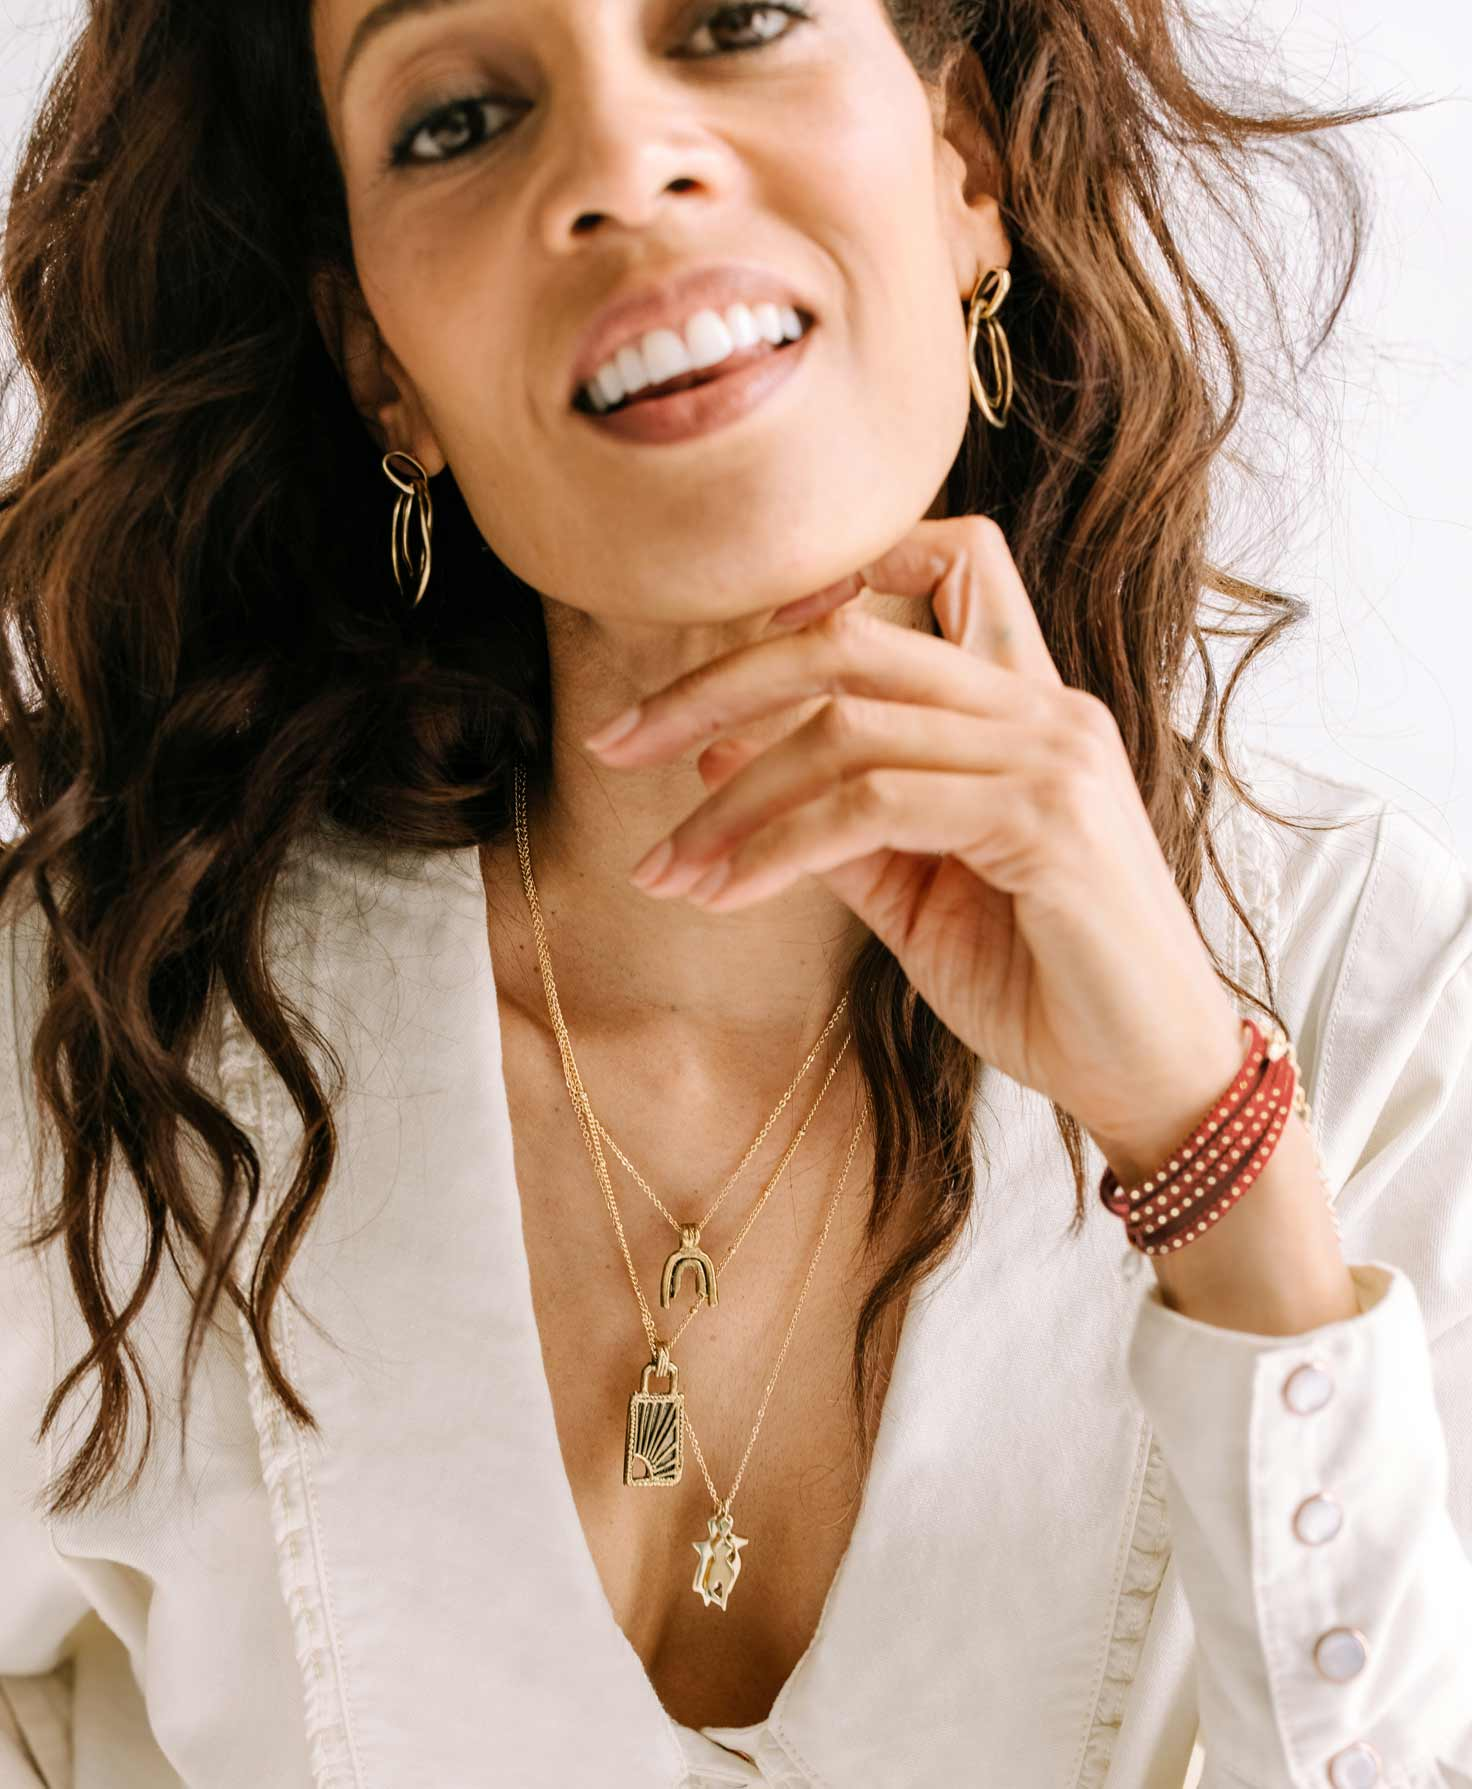 A model wears the Wild Link Earrings. She pairs them with several dainty necklaces that share the same gold and neutral color palette, including the Charmed Medallion Necklaces and the Fable Necklace.